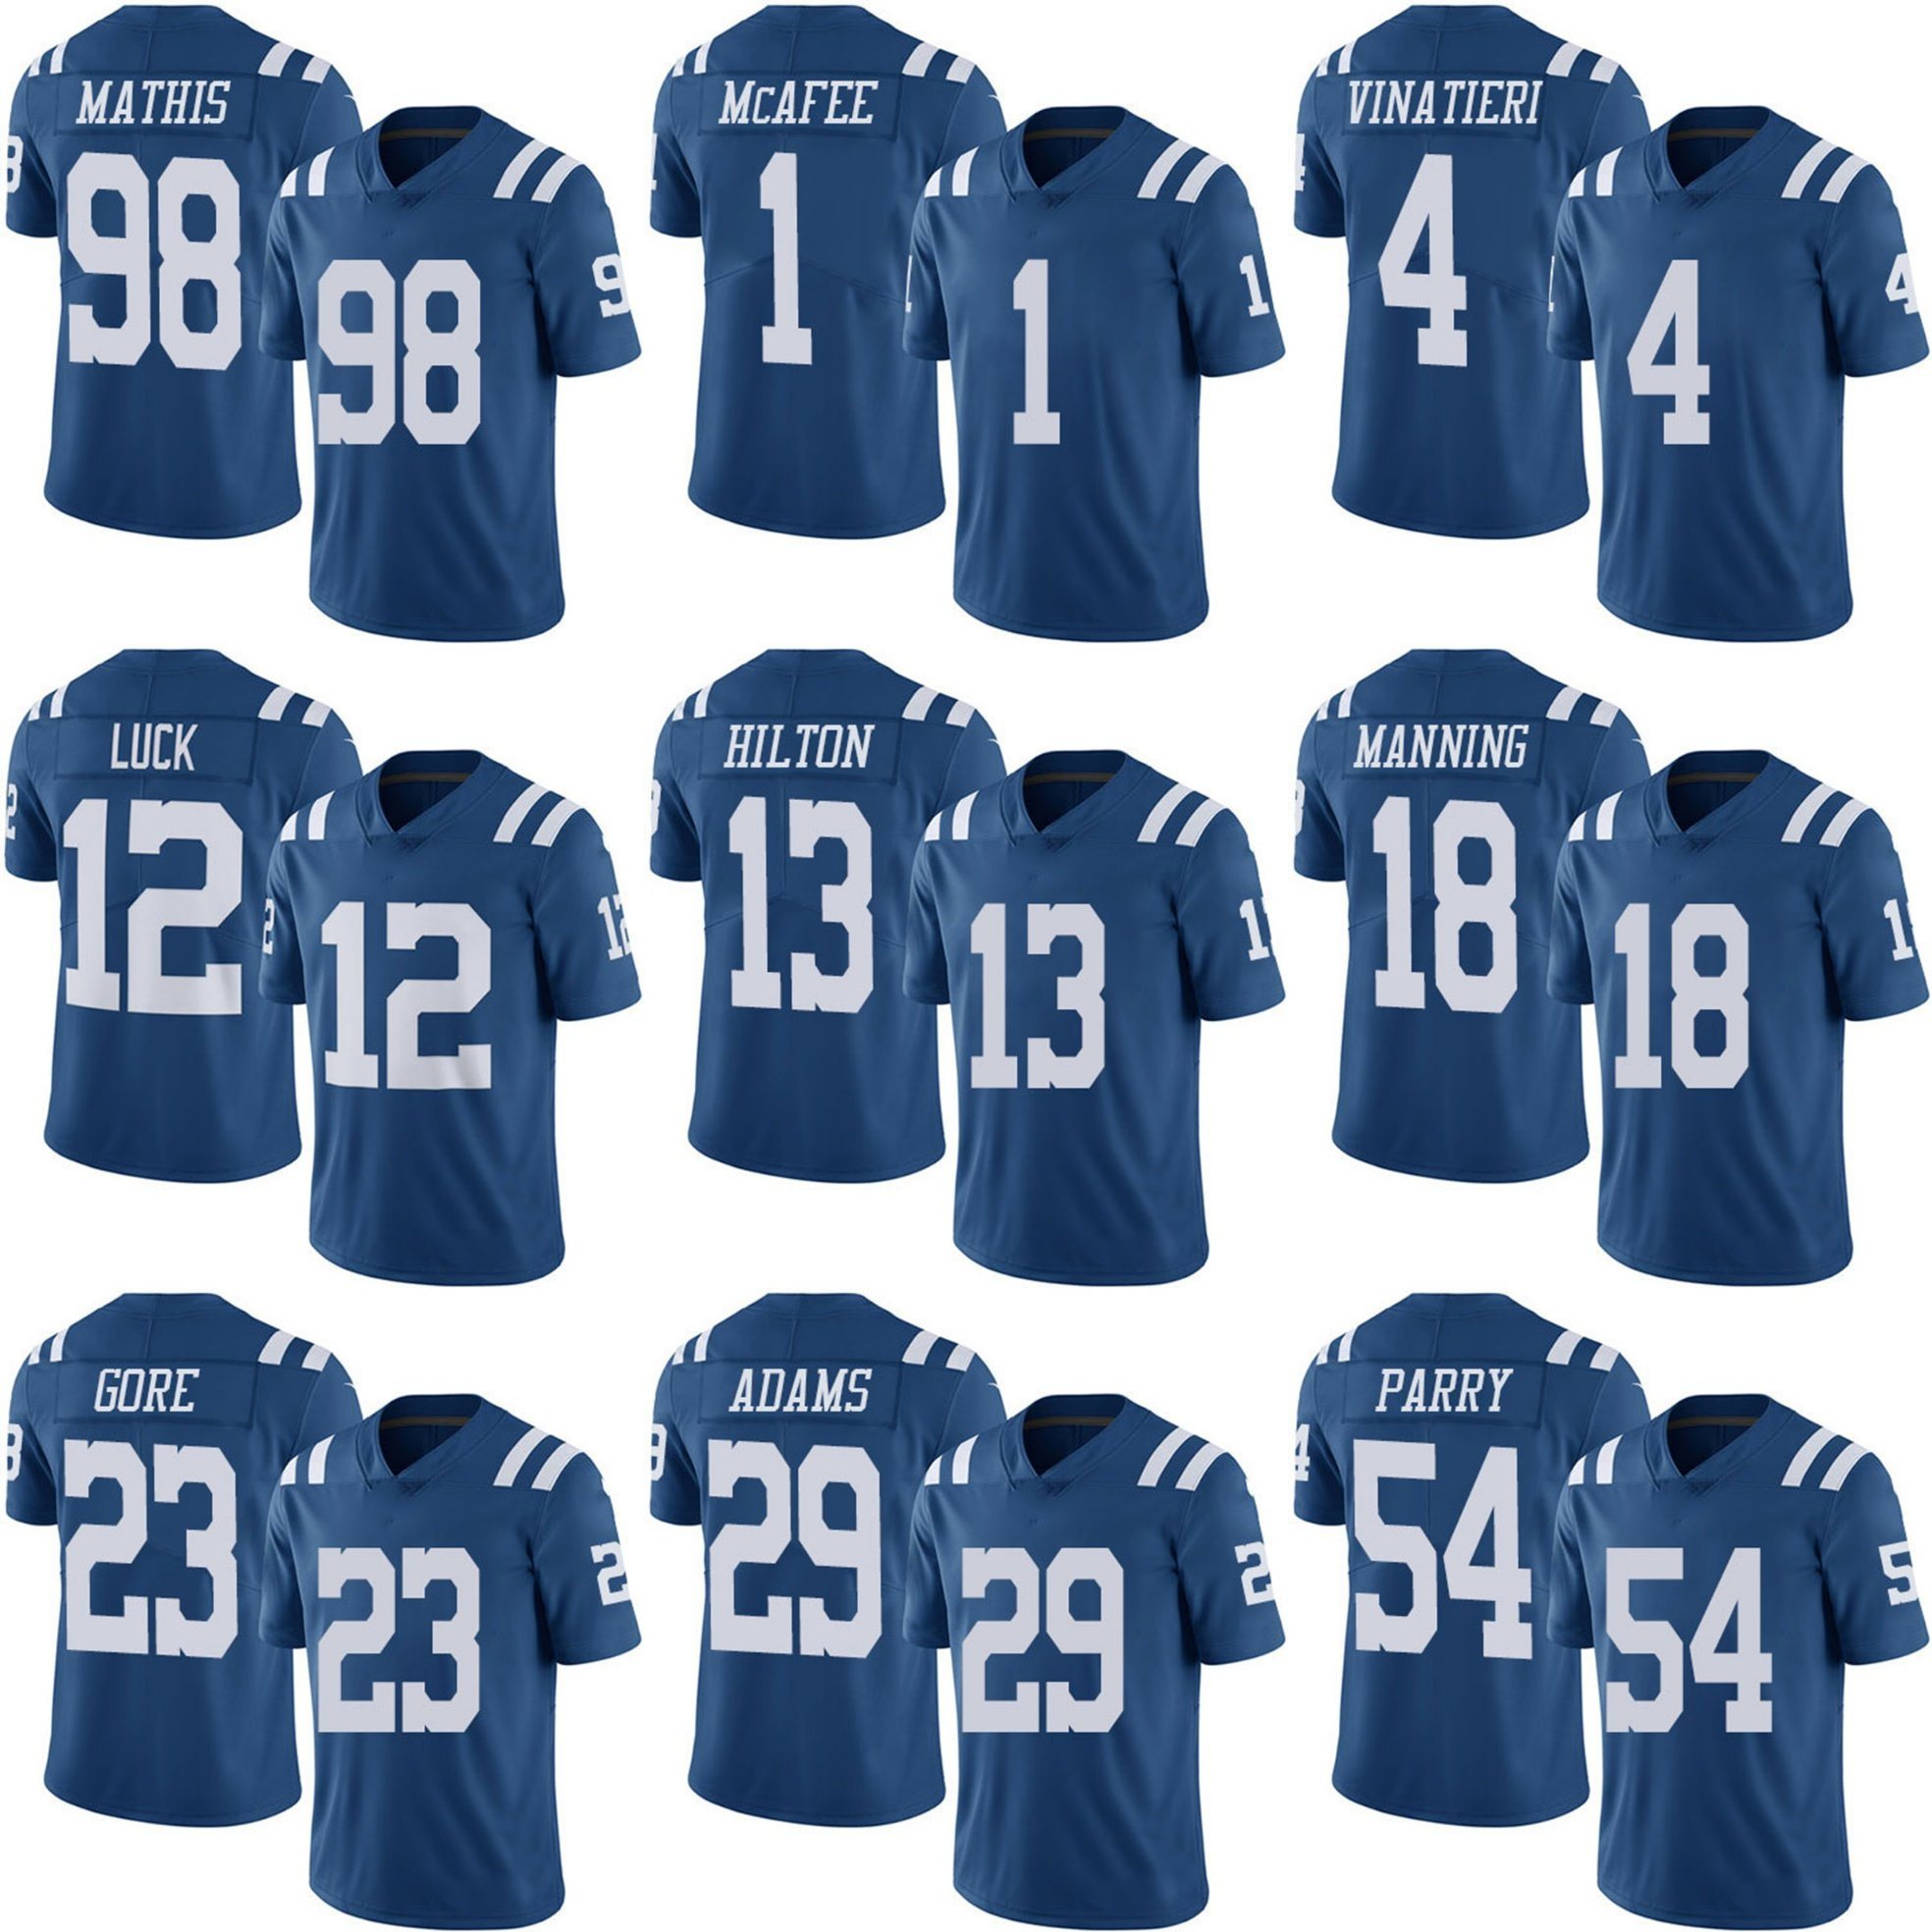 promo code 18a2f 83601 [Hot Item] Blue Colts Pat Mcafee Adam Vinatieri Andrew Luck Customized  Football Jerseys